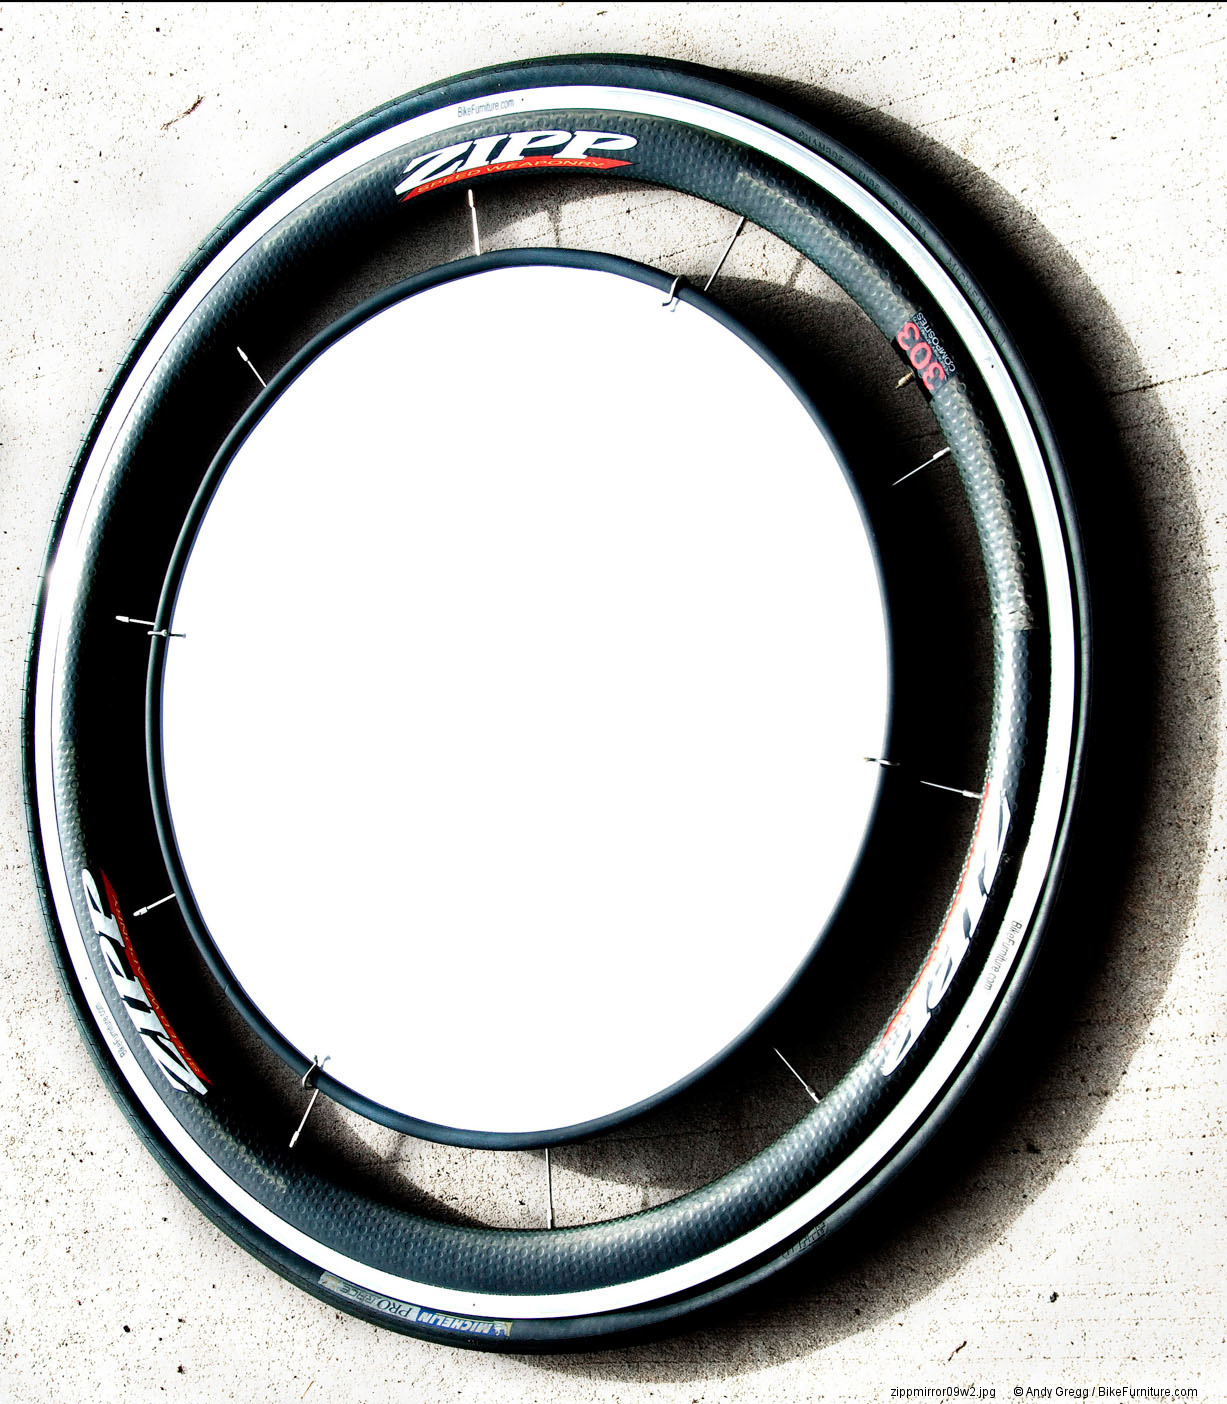 Bike wheel mirror - road carbon